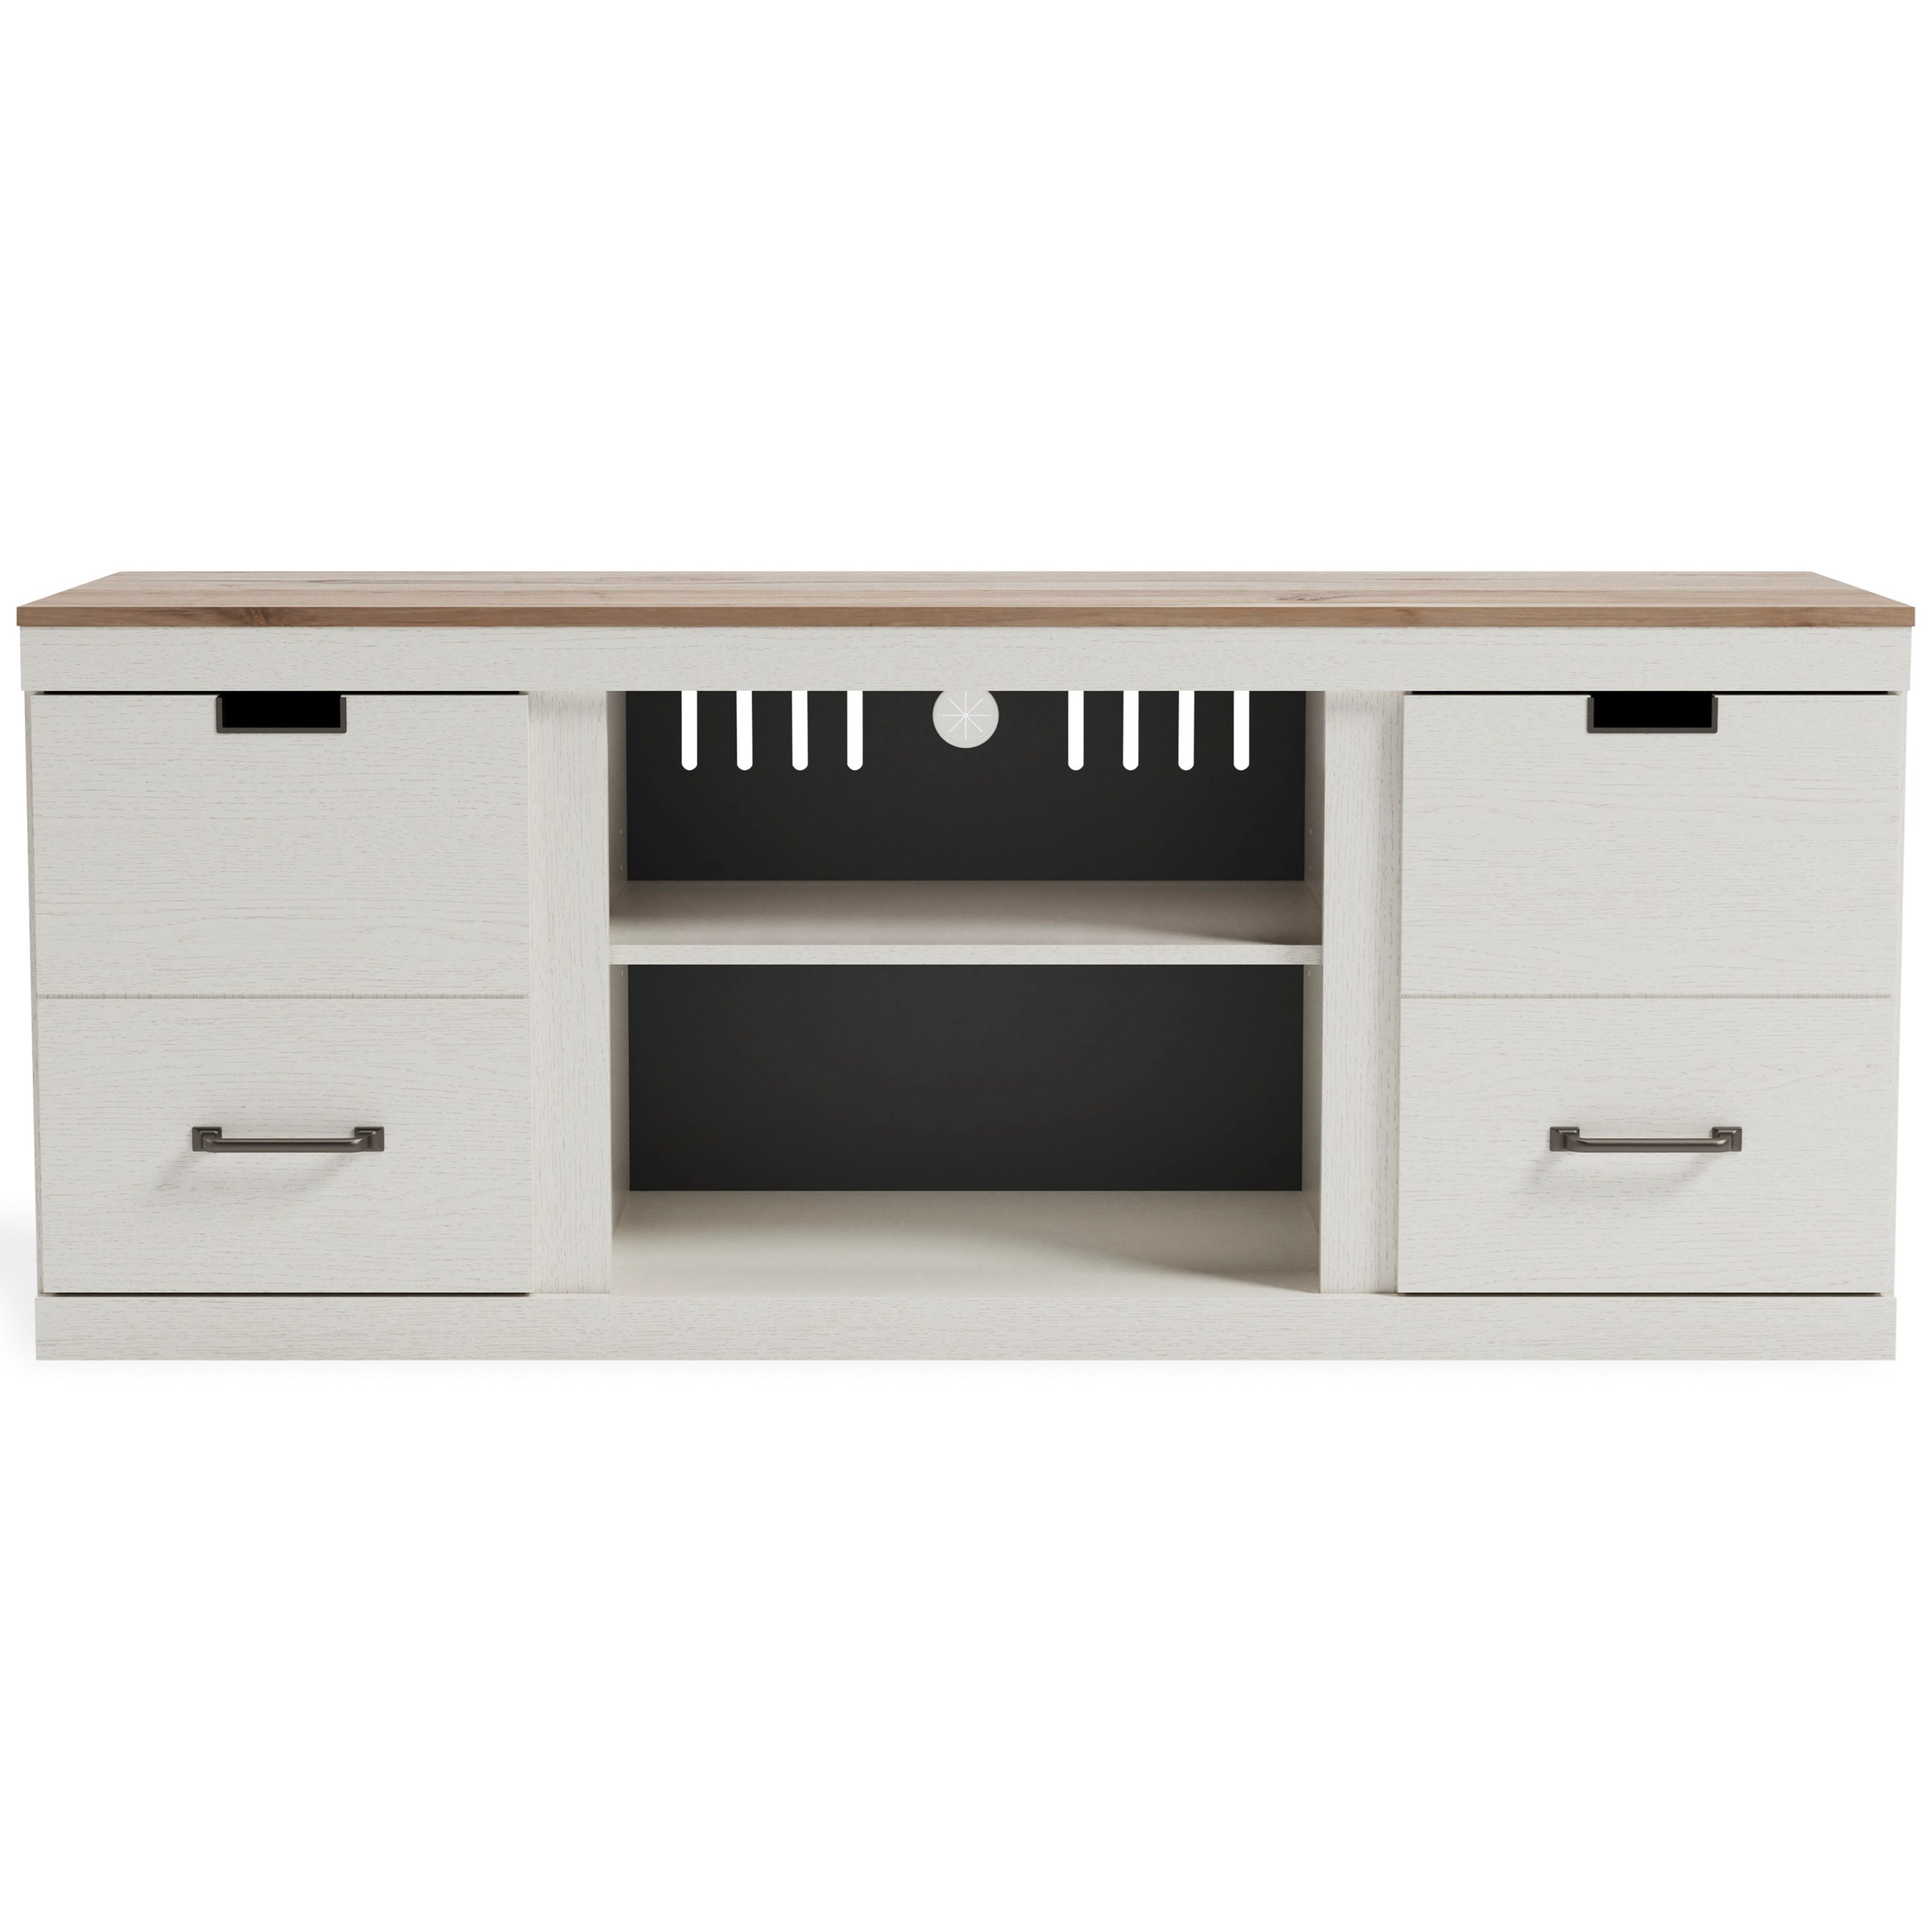 """Vaibryn 60"""" TV Stand by Signature Design by Ashley at Furniture Barn"""